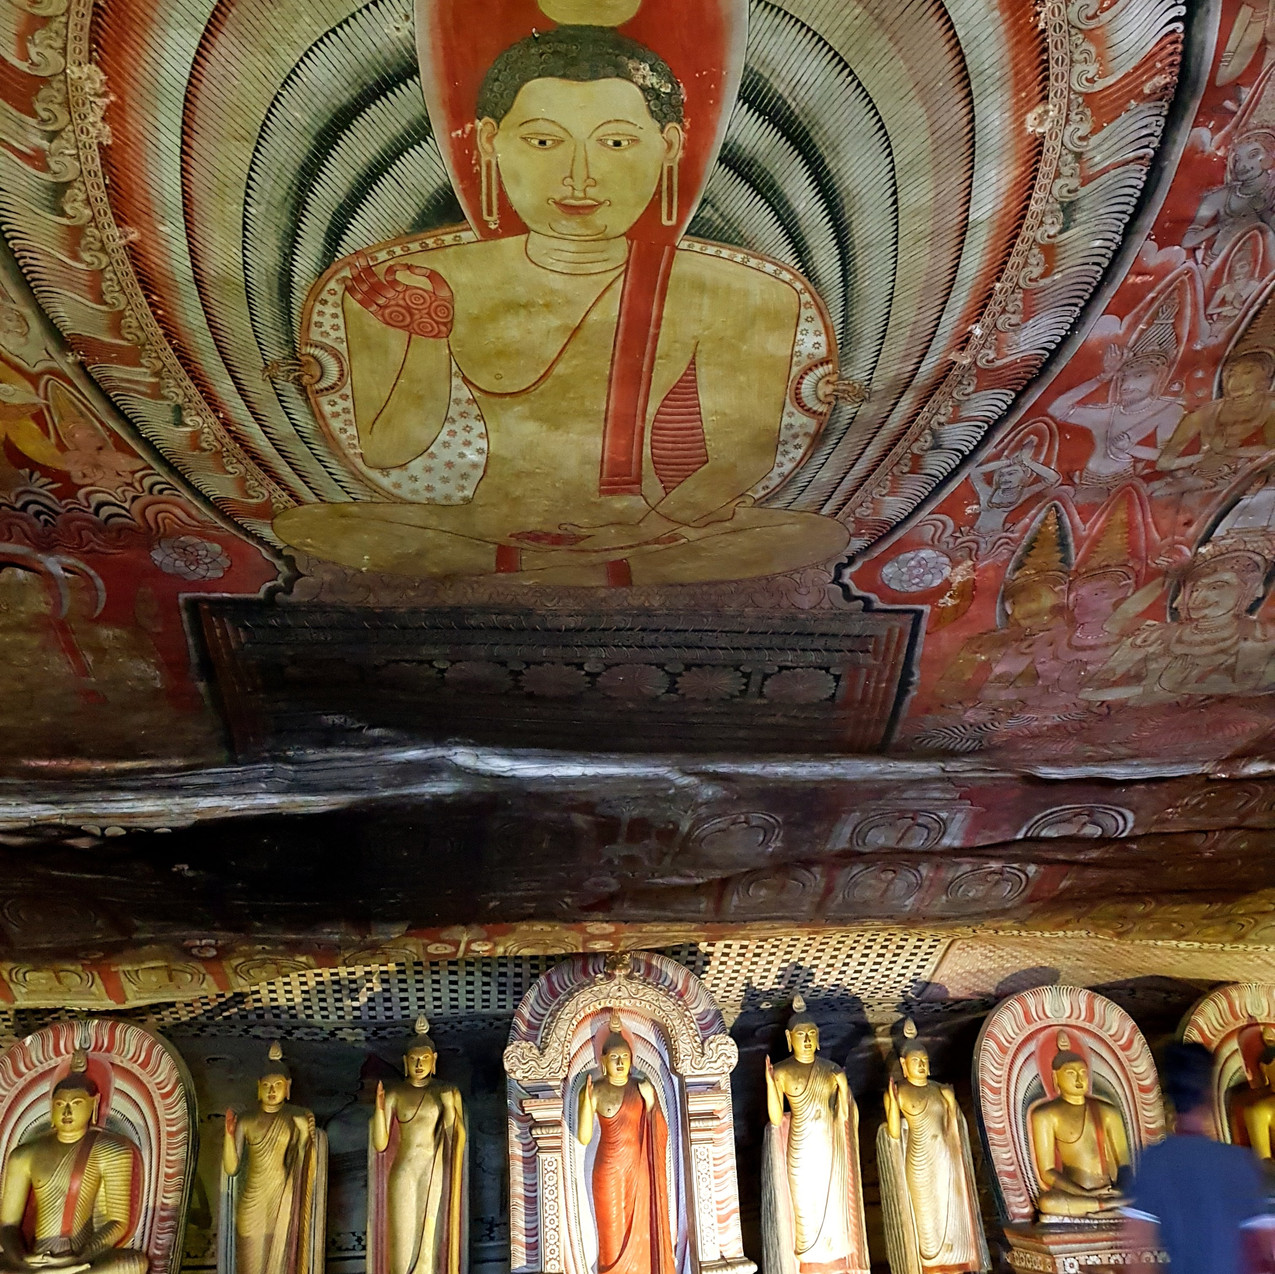 Colorful frescoes decorate the insides of the caves